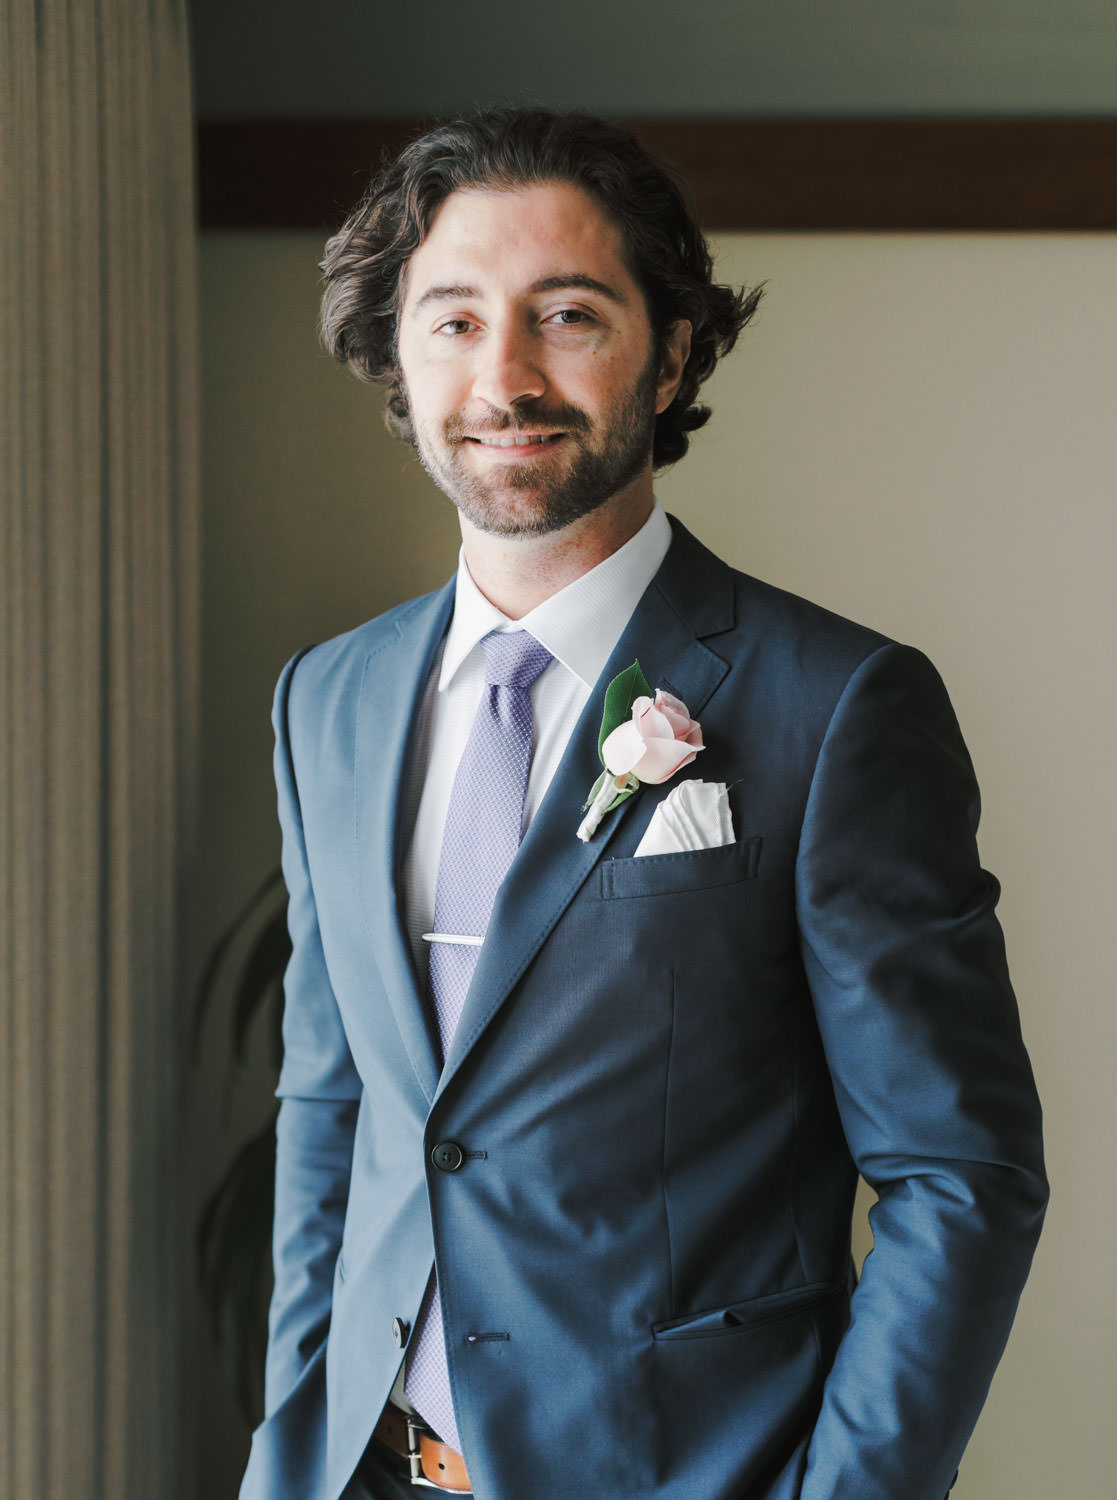 Groom in navy suit with blush rose boutonniere, Lodge at Torrey Pines wedding, photography by Cavin Elizabeth Photography